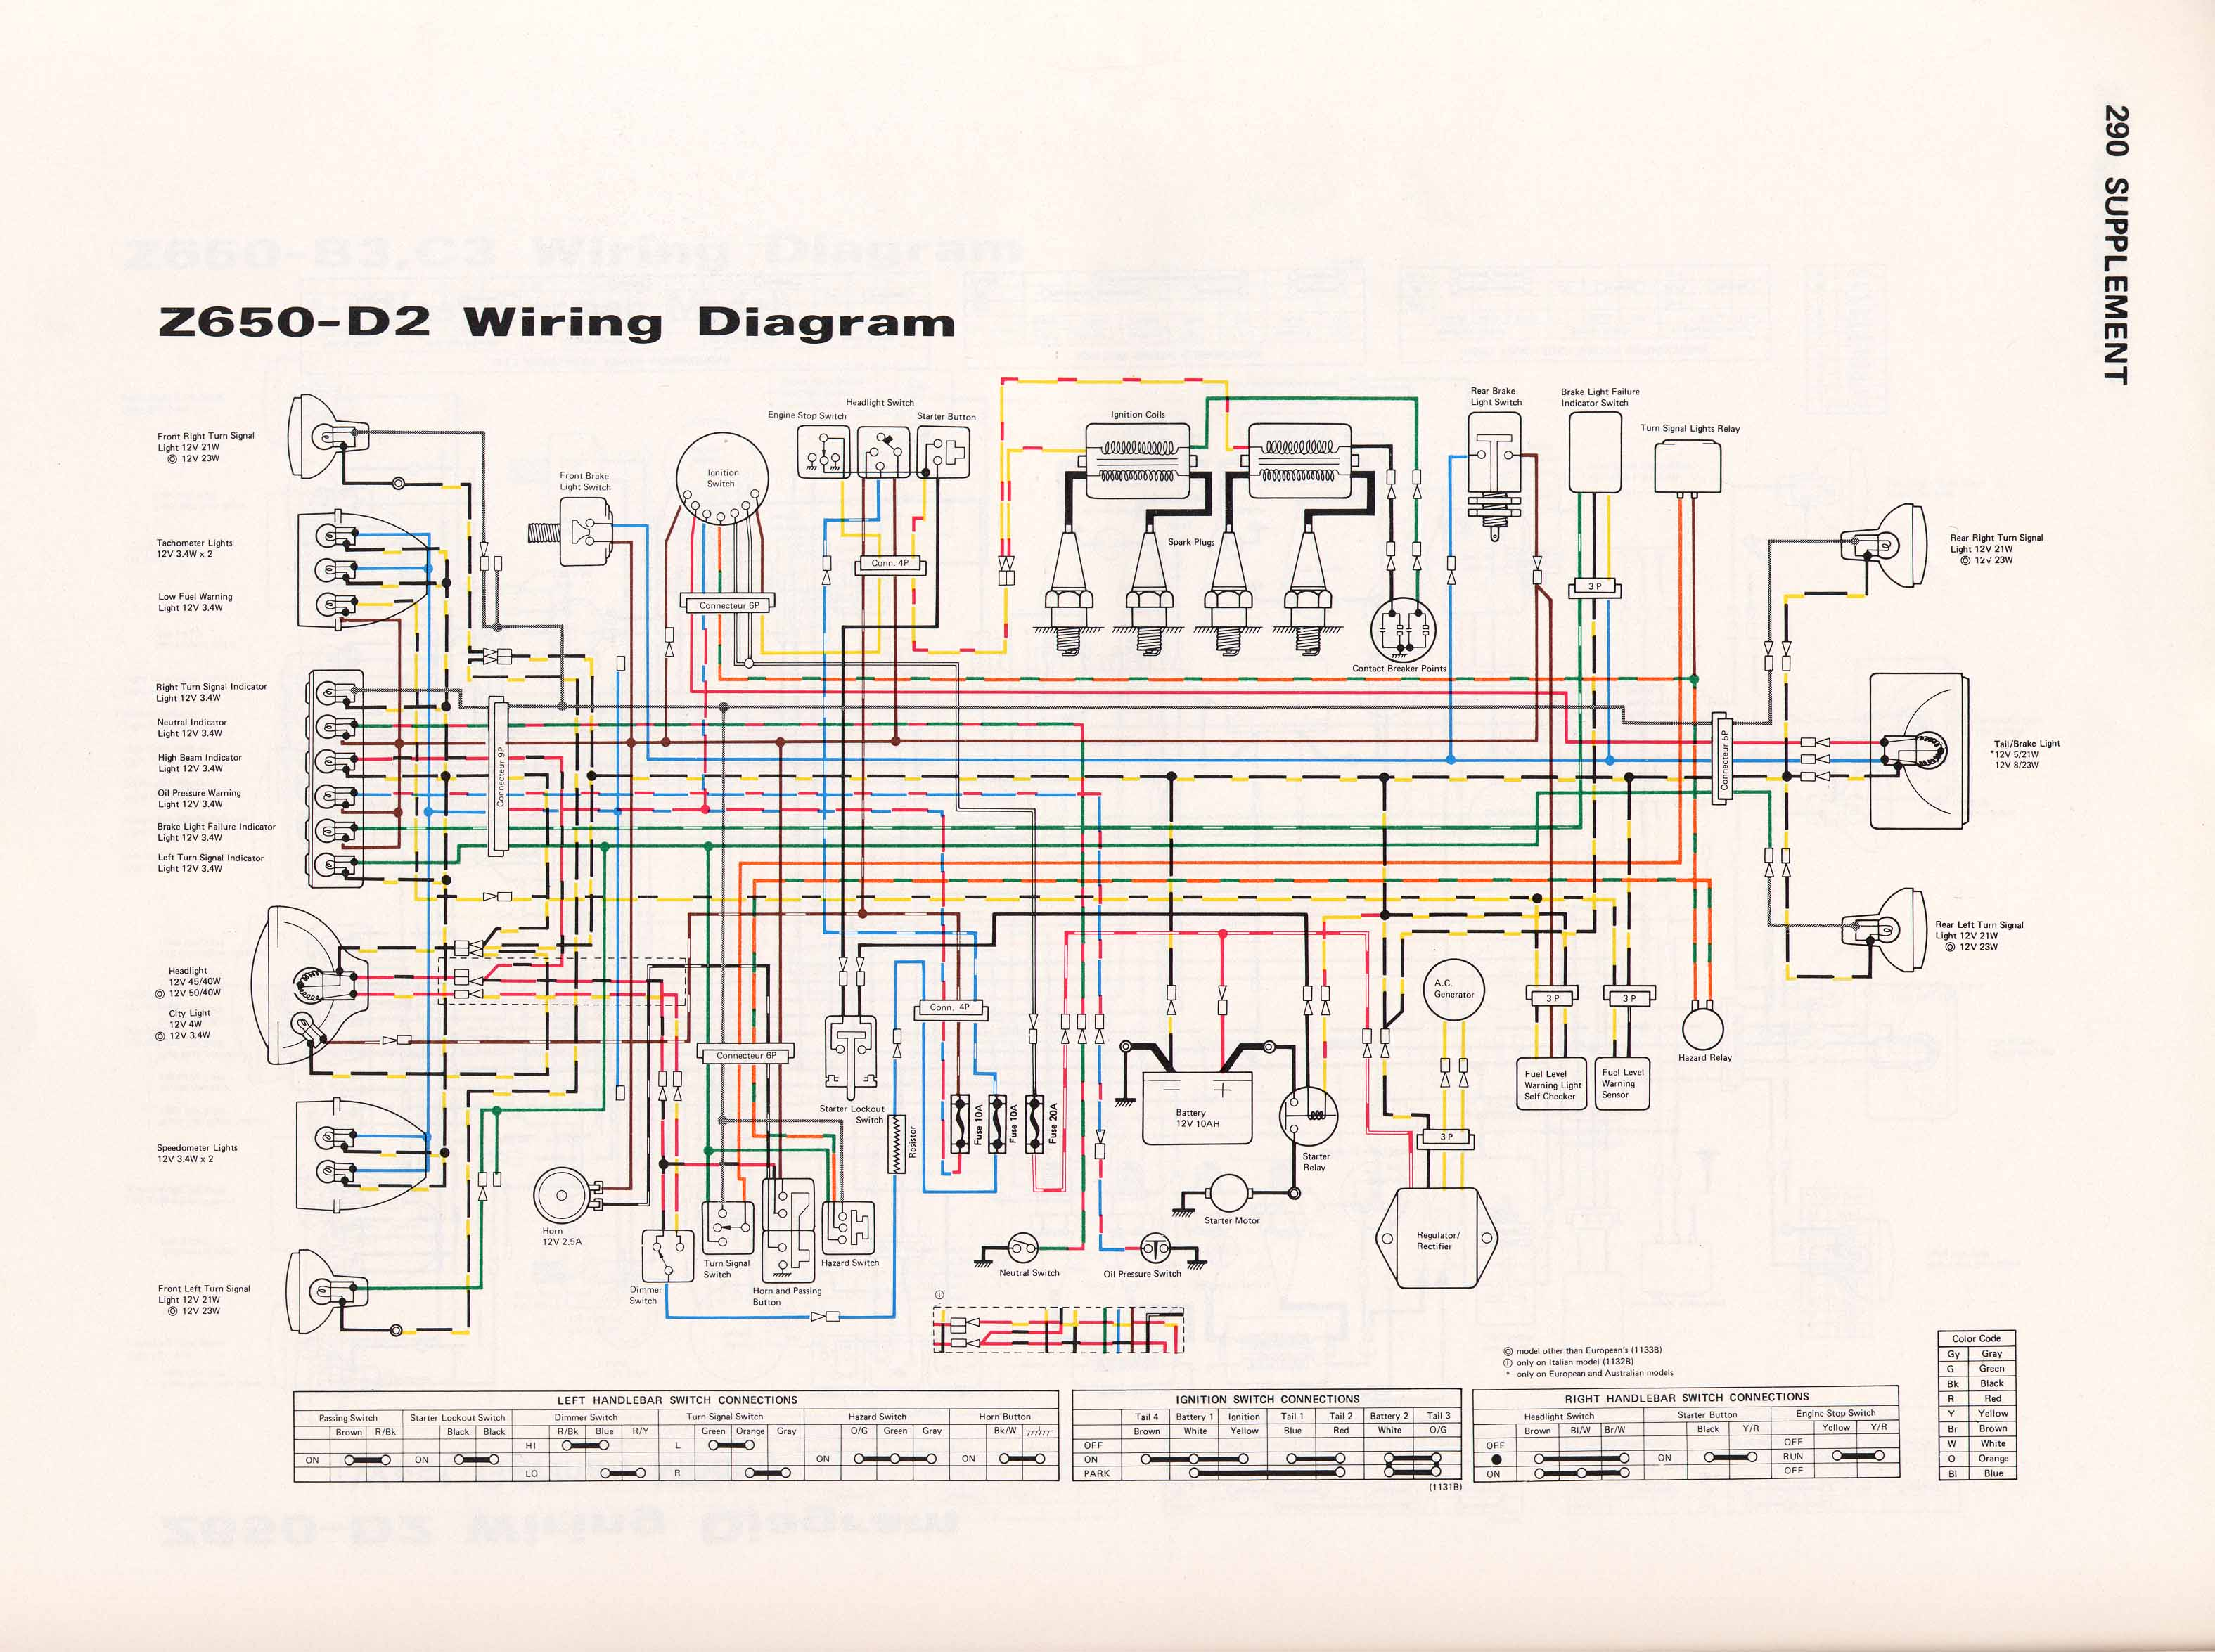 Z650 D2 kz650 info wiring diagrams z650 wiring diagram at reclaimingppi.co